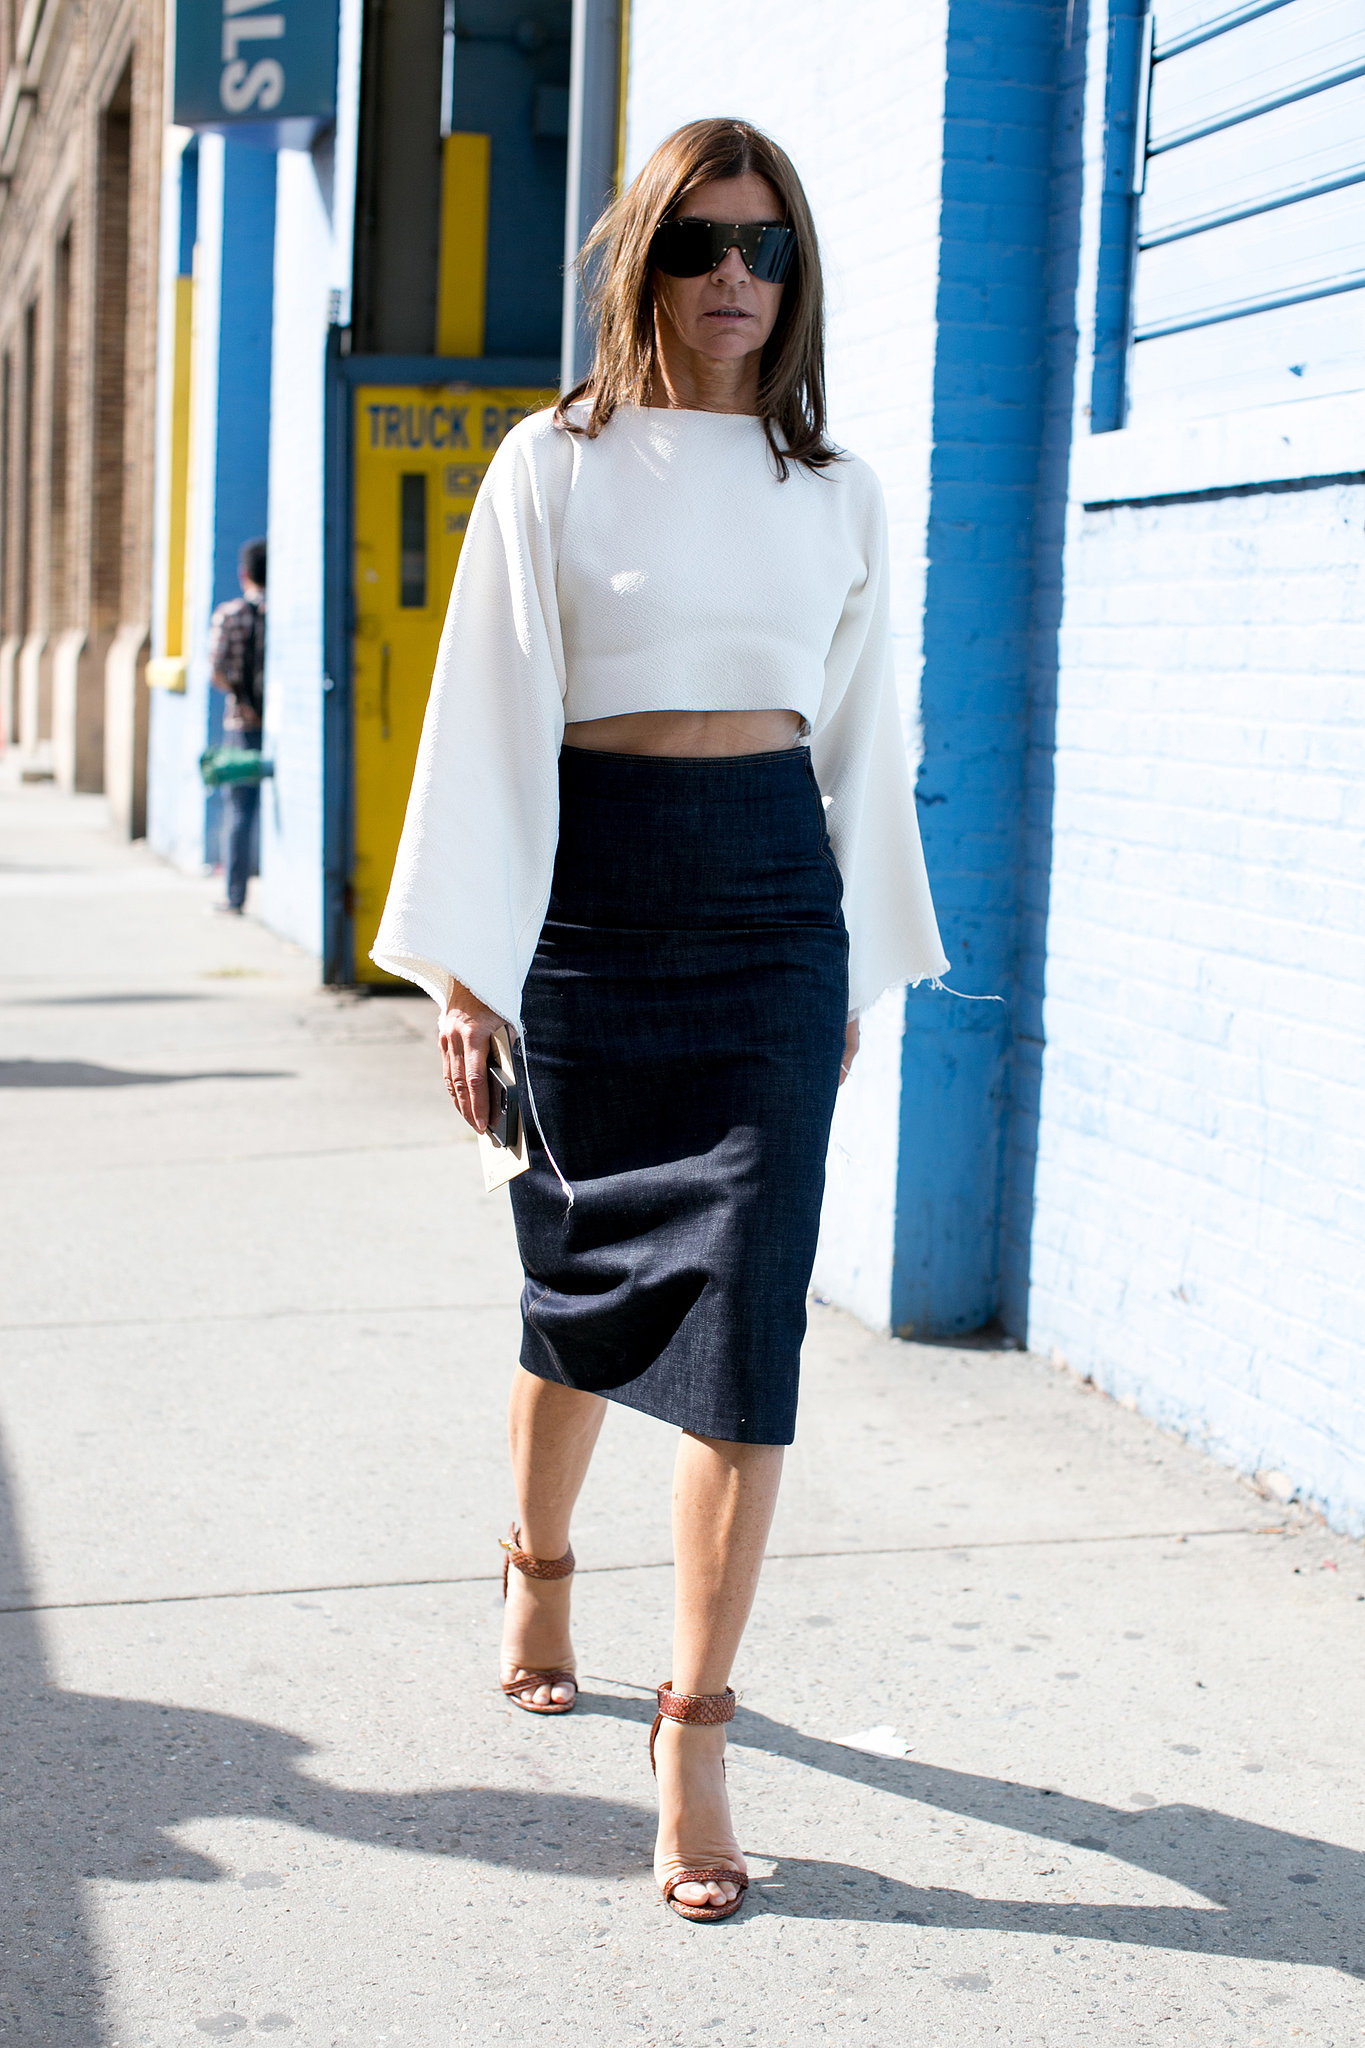 Even Carine Roitfeld Bared Her Midriff Street Style